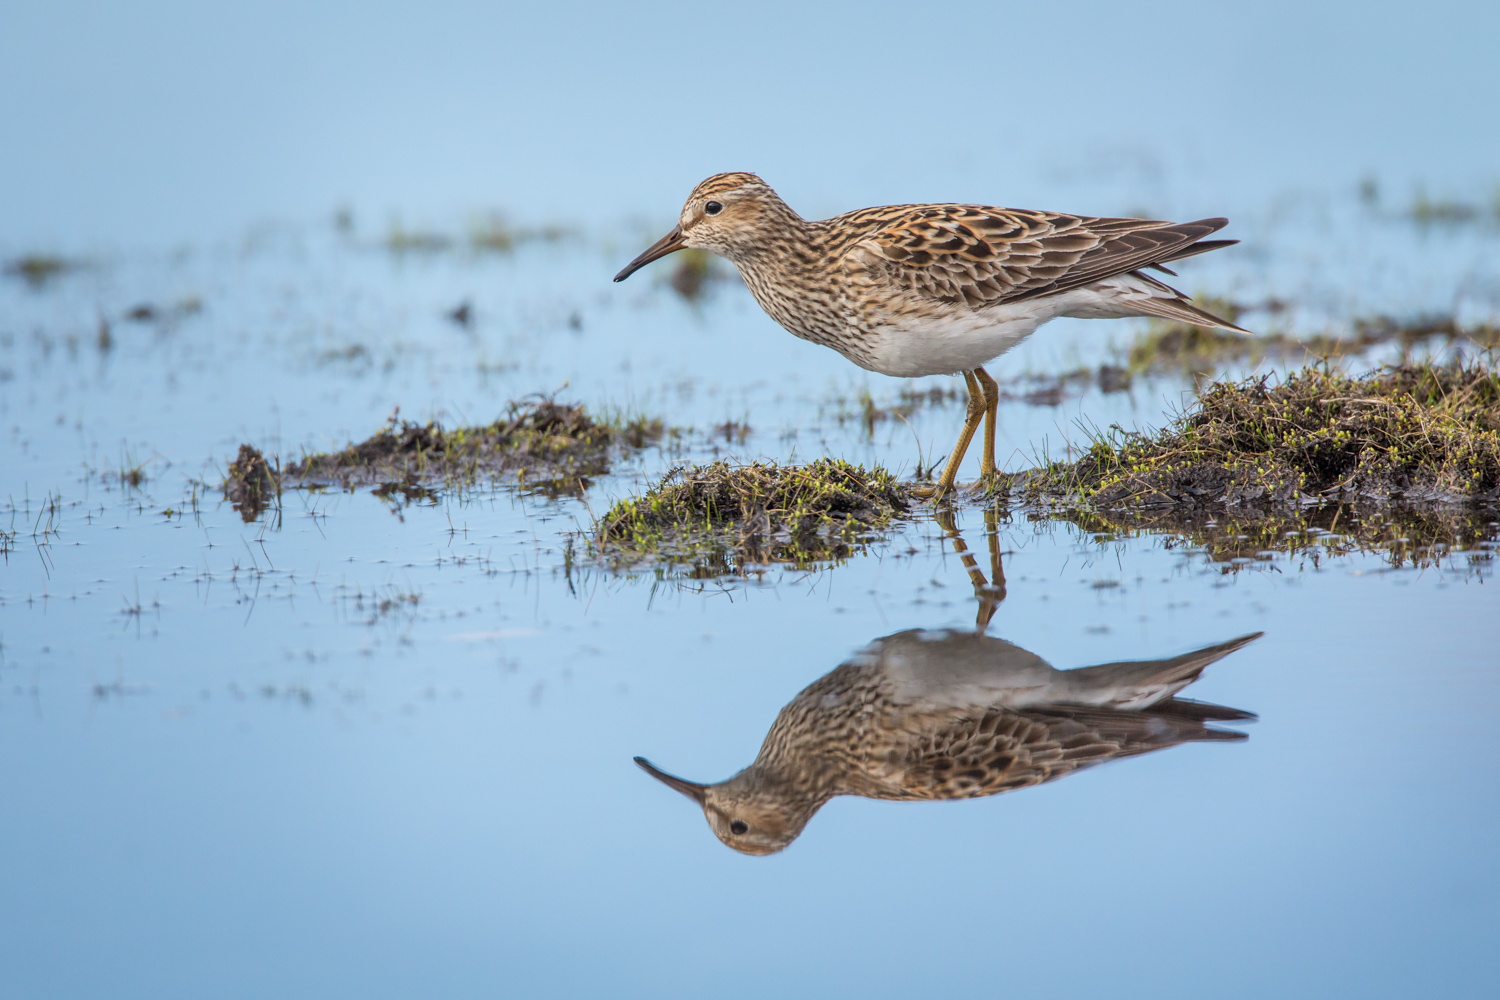 A Guide to Photographing Birds and Wildlife in a Wetland Area - sandpiper in the water